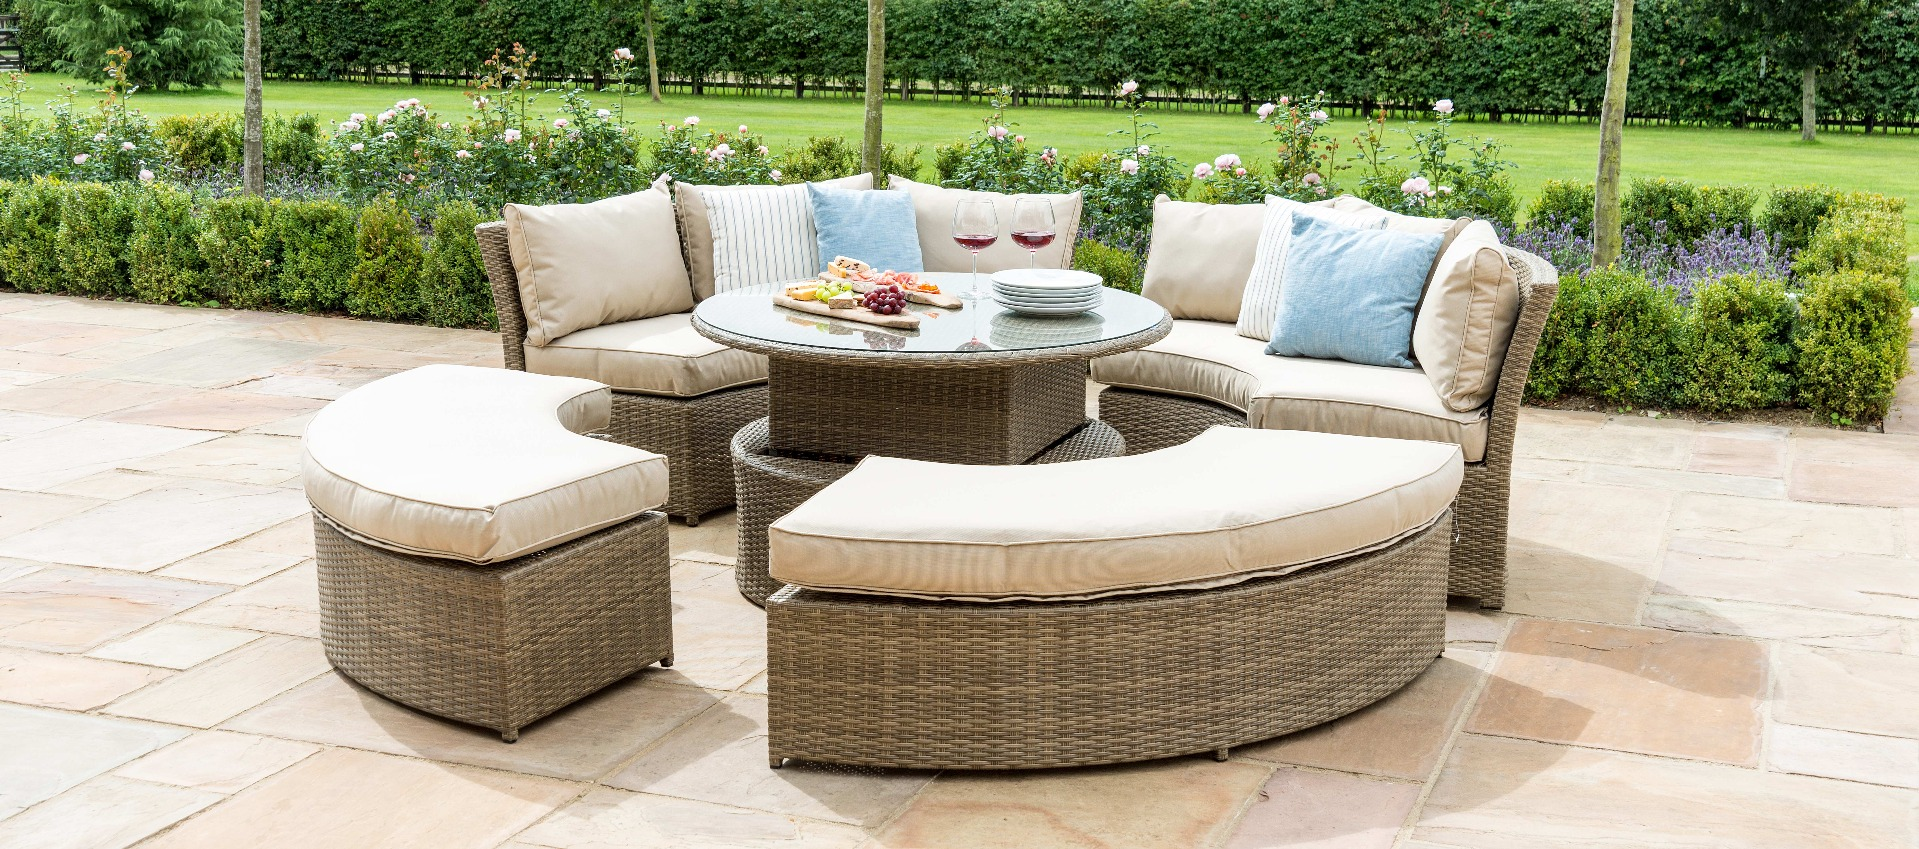 Maze Rattan - Chelsea Lifestyle Suite - Tuscany